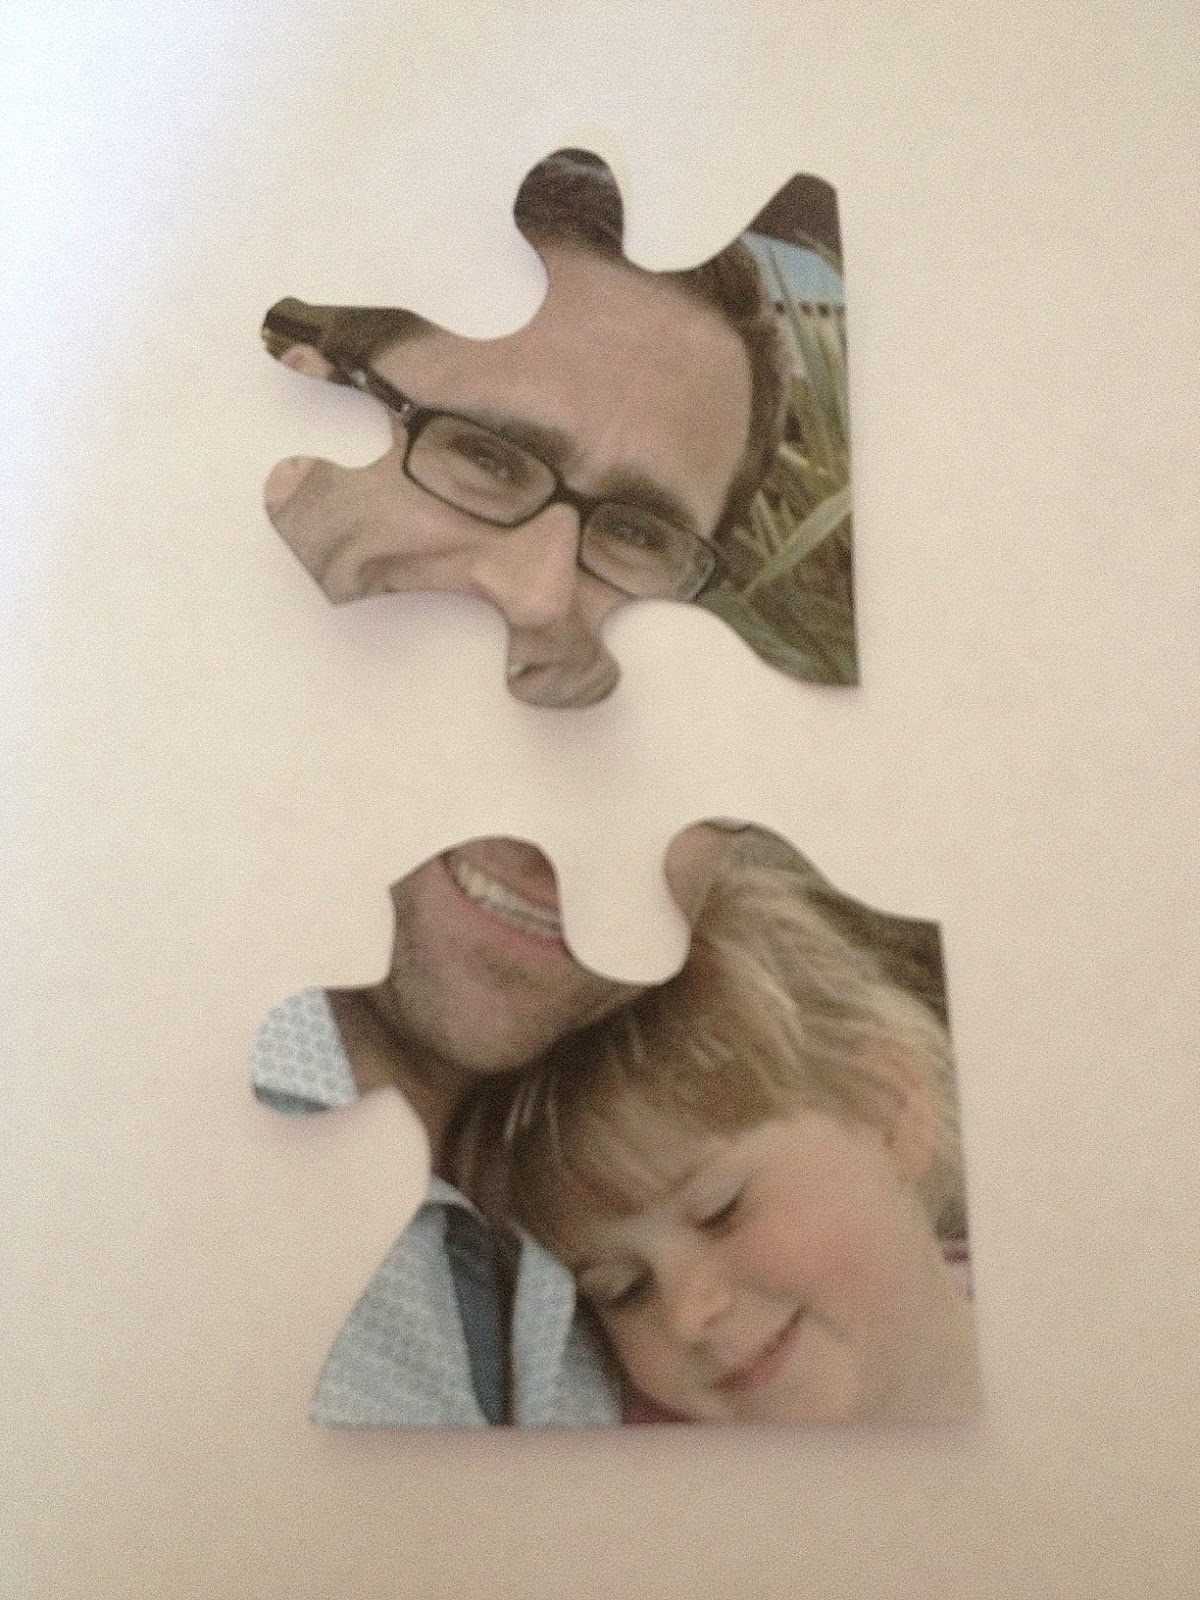 Me and my shadow: Upcycled Jigsaw Puzzle Pieces - How to